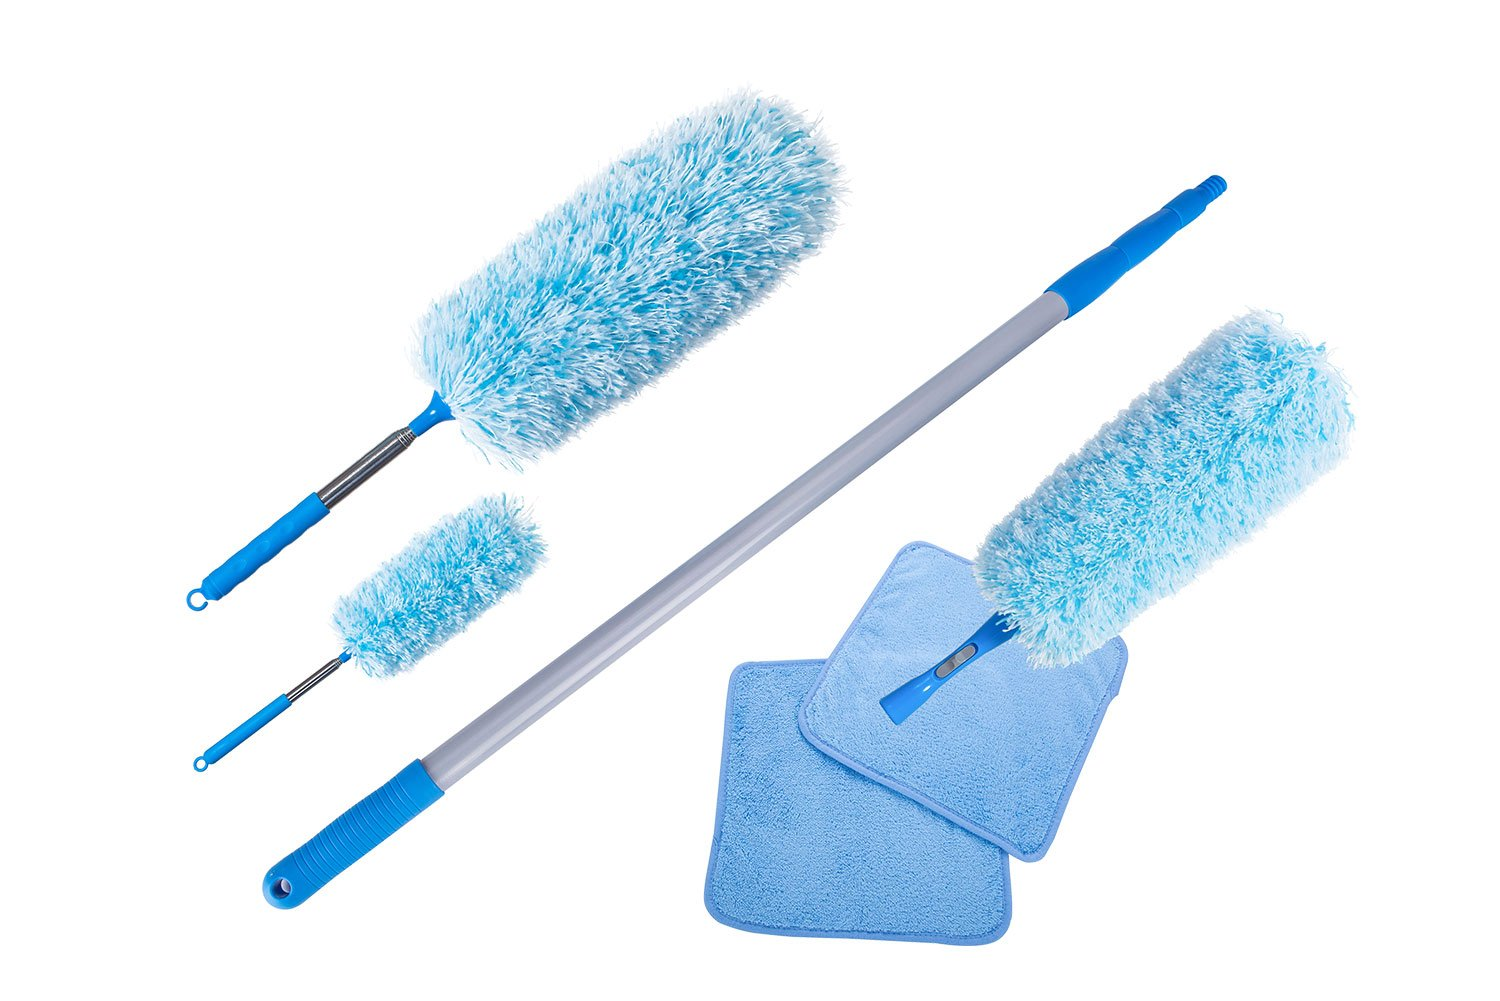 Extendable Cleaning Microfiber Fluffy Duster set with telescopic Pole, Washable fluffy Duster for high reach ceiling fan, Office and Car, (set of 6 including: 3 X Extendable dusters,1 X Extendable ab by Mogin